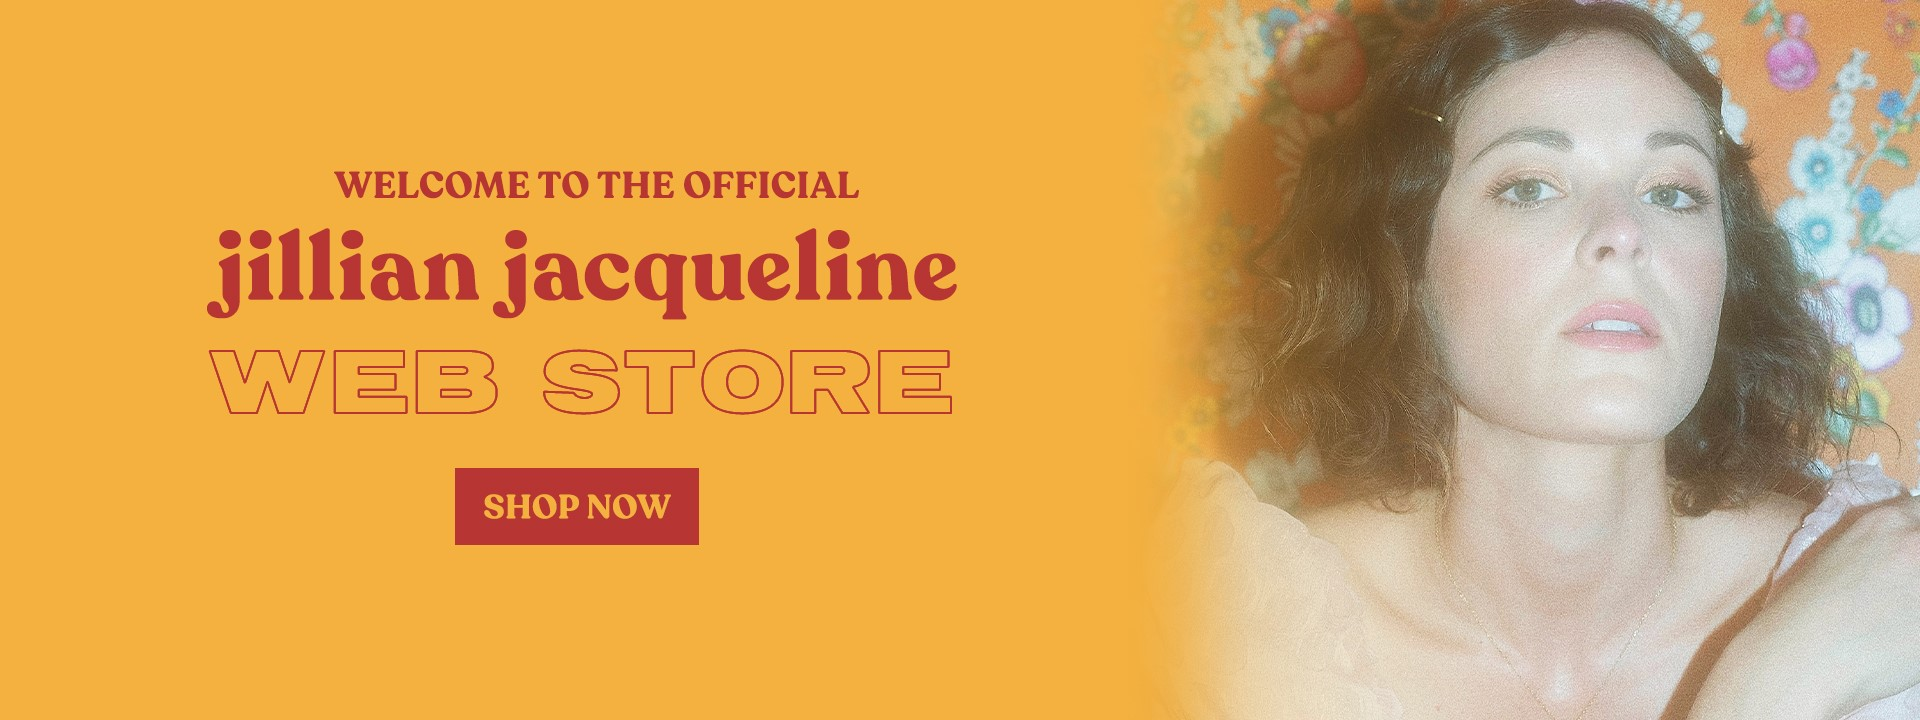 Welcome to the official Jillian Jacqueline web store | Shop now